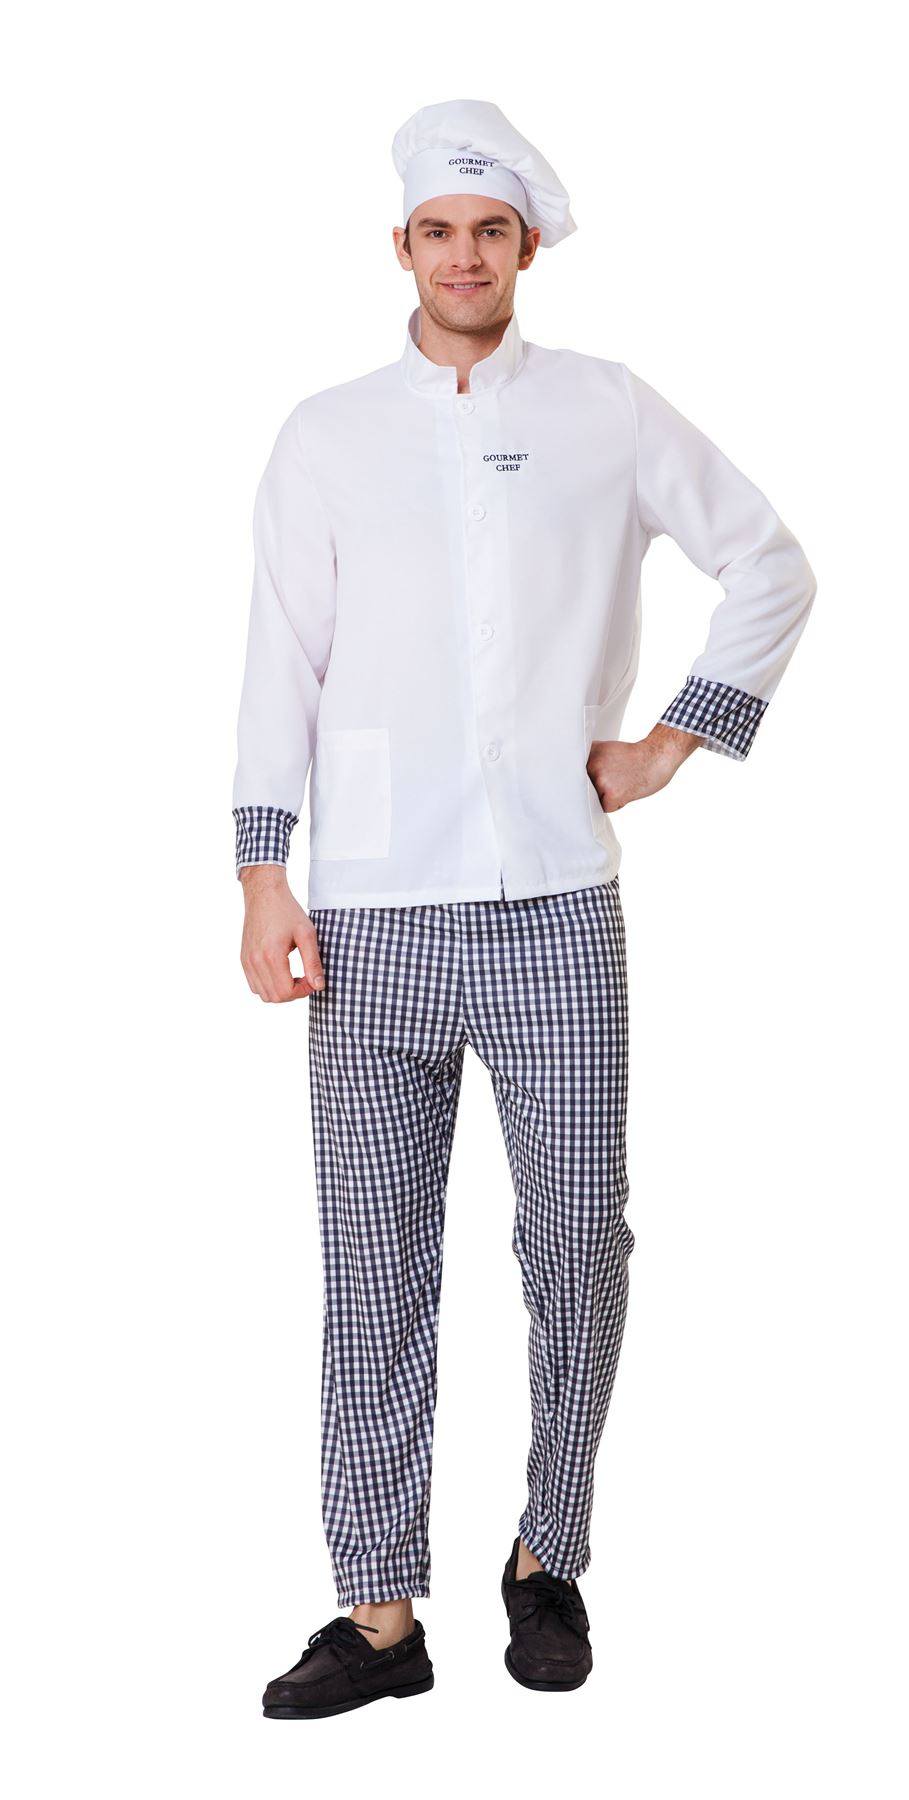 Men's Master Chef Fancy Dress Costume